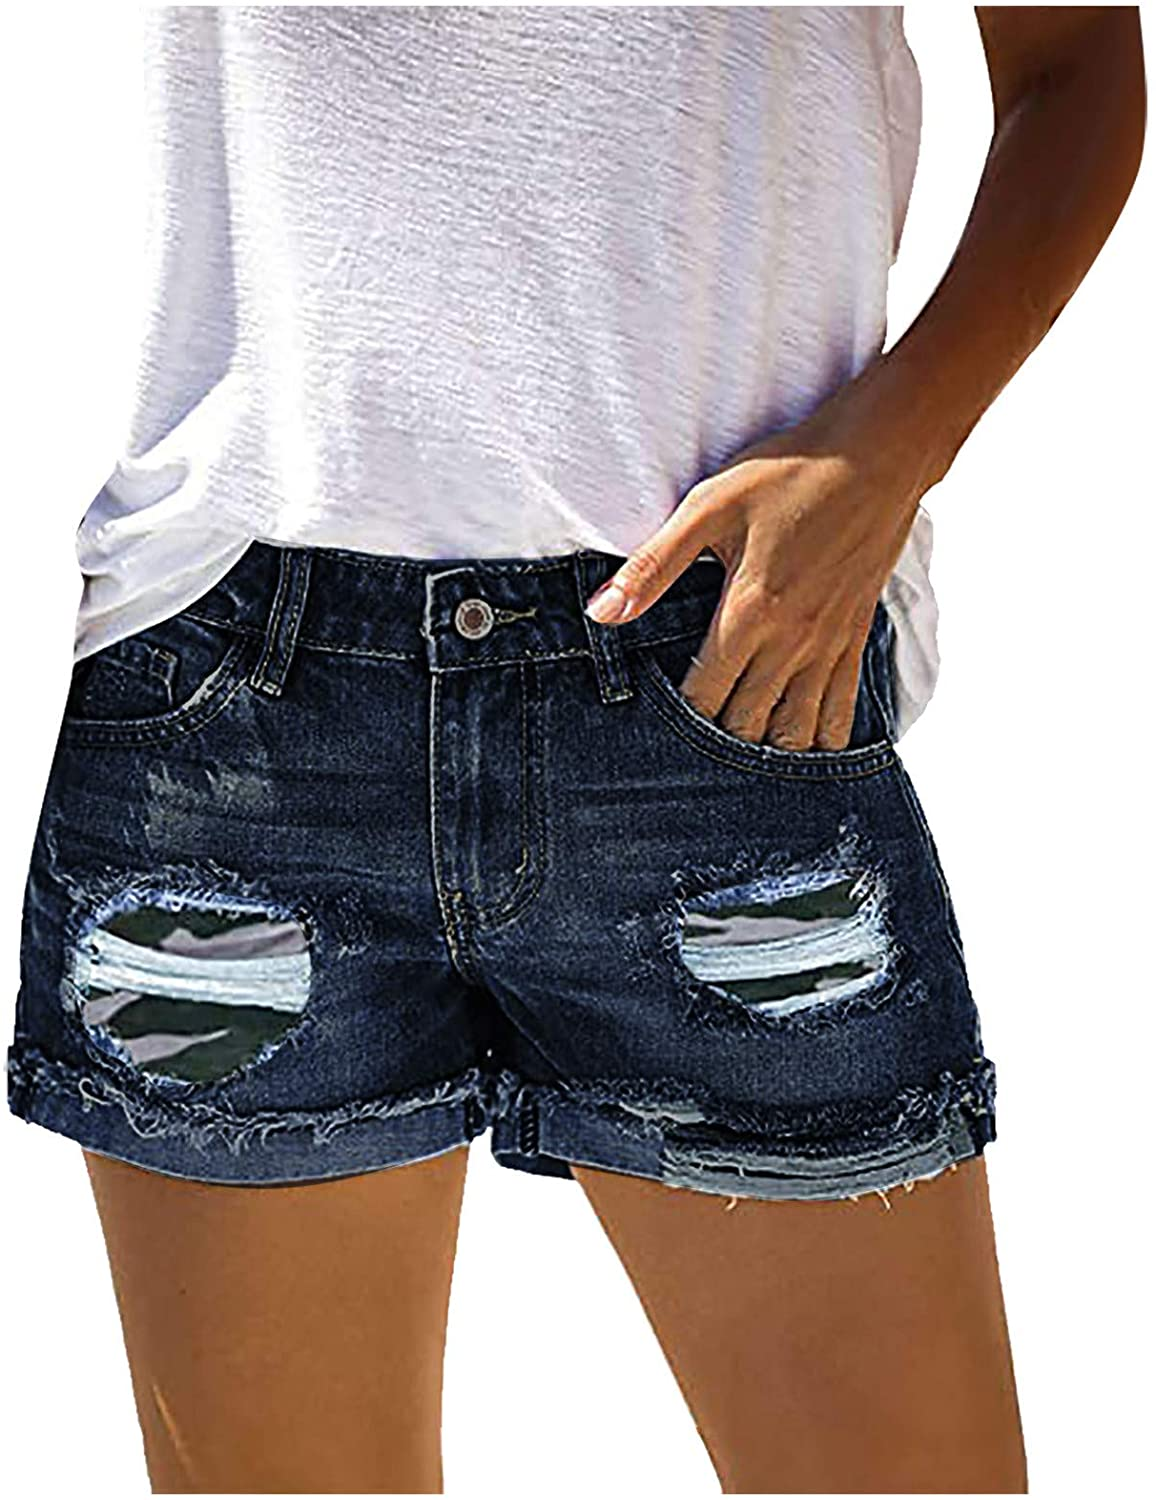 MASZONE Denim Shorts for Women High Waisted, Distressed Ripped Shorts Jean with Holes Hot Short Jeans with Pockets